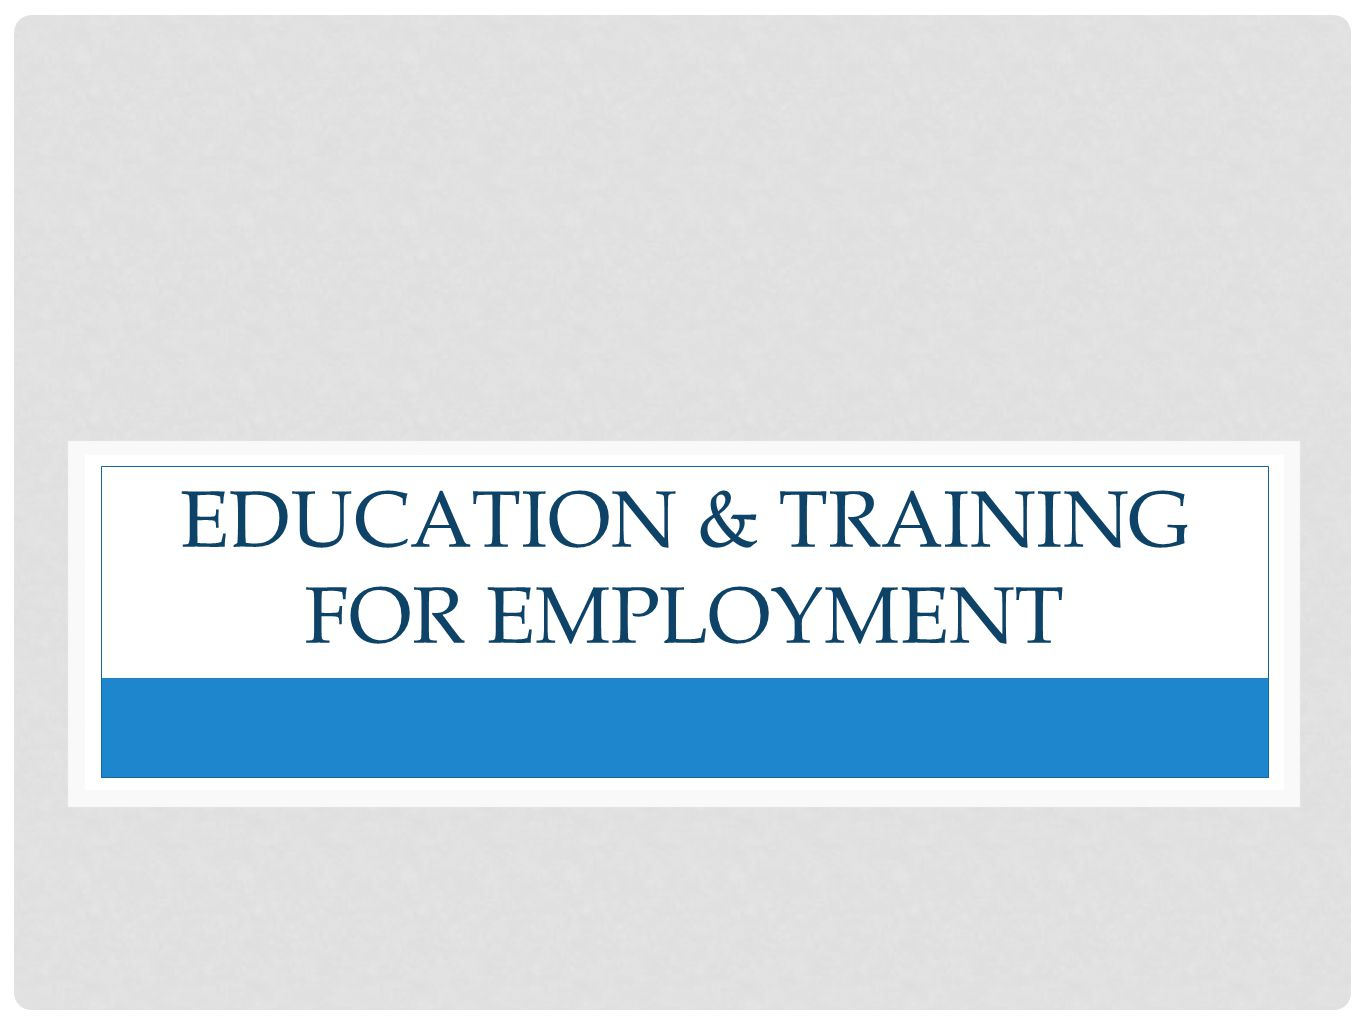 education & training for employment